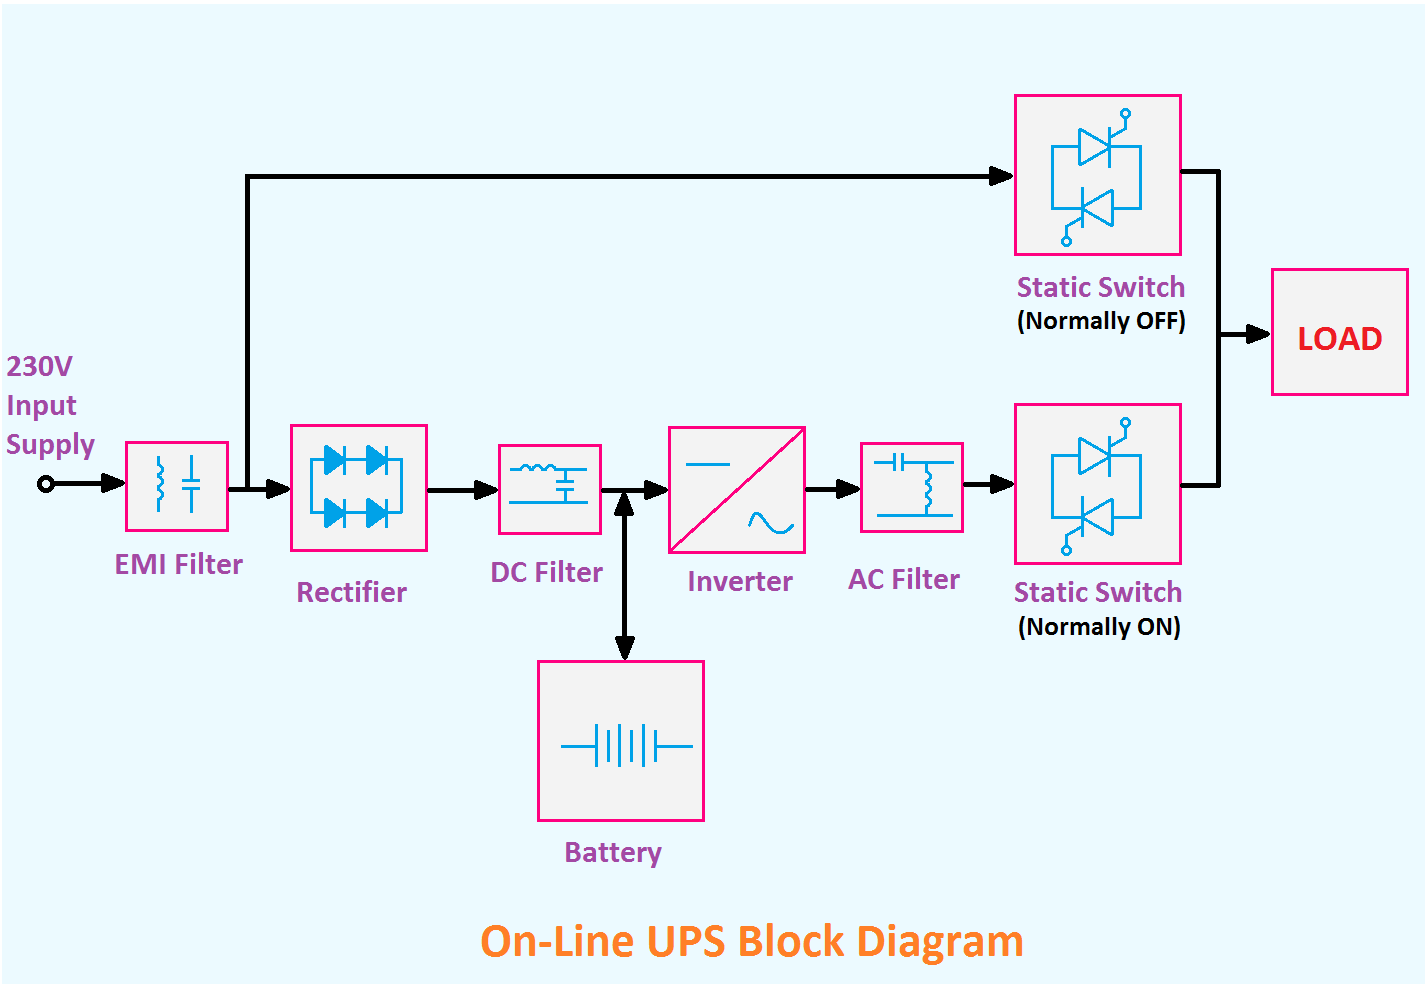 small resolution of explained offline and online ups block diagram etechnog schematic 3 phase ups online ups block